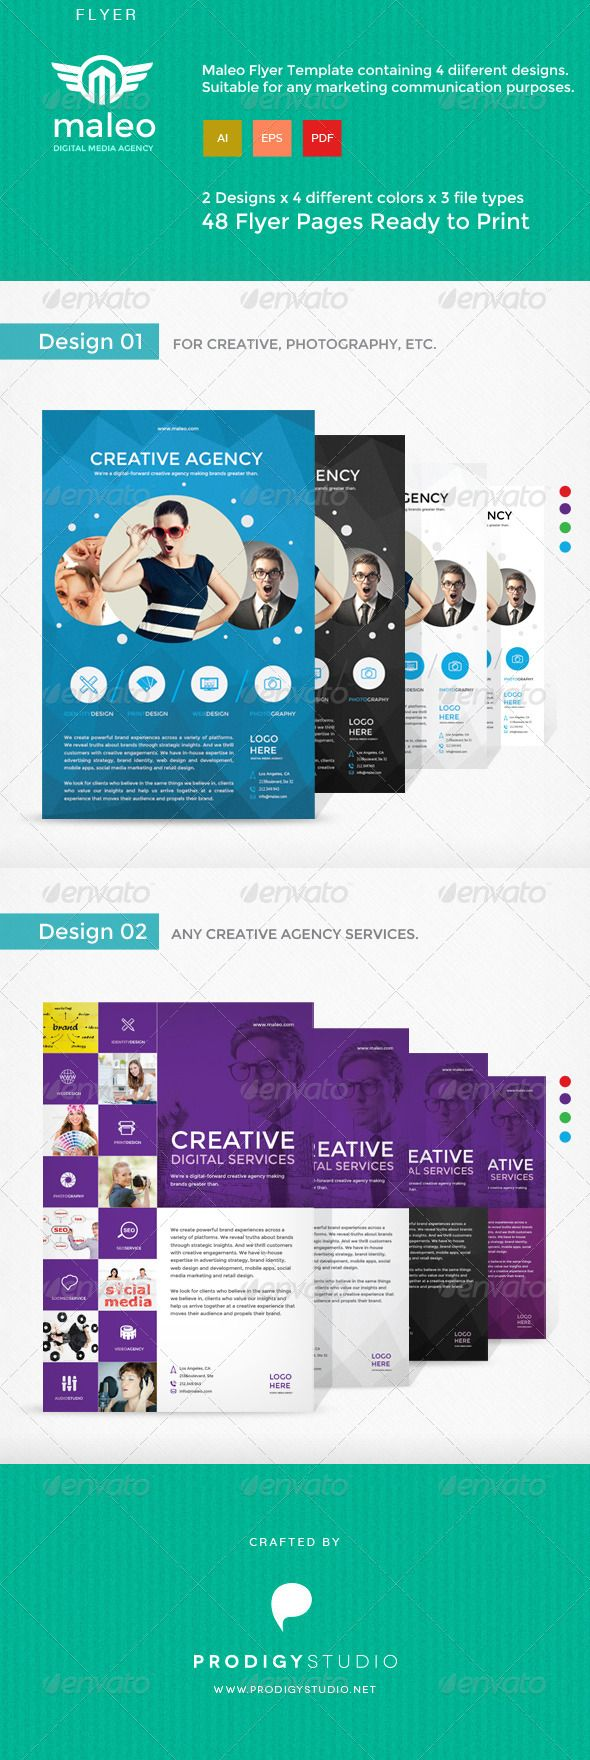 best images about business flyer templates dance maleo flyer template